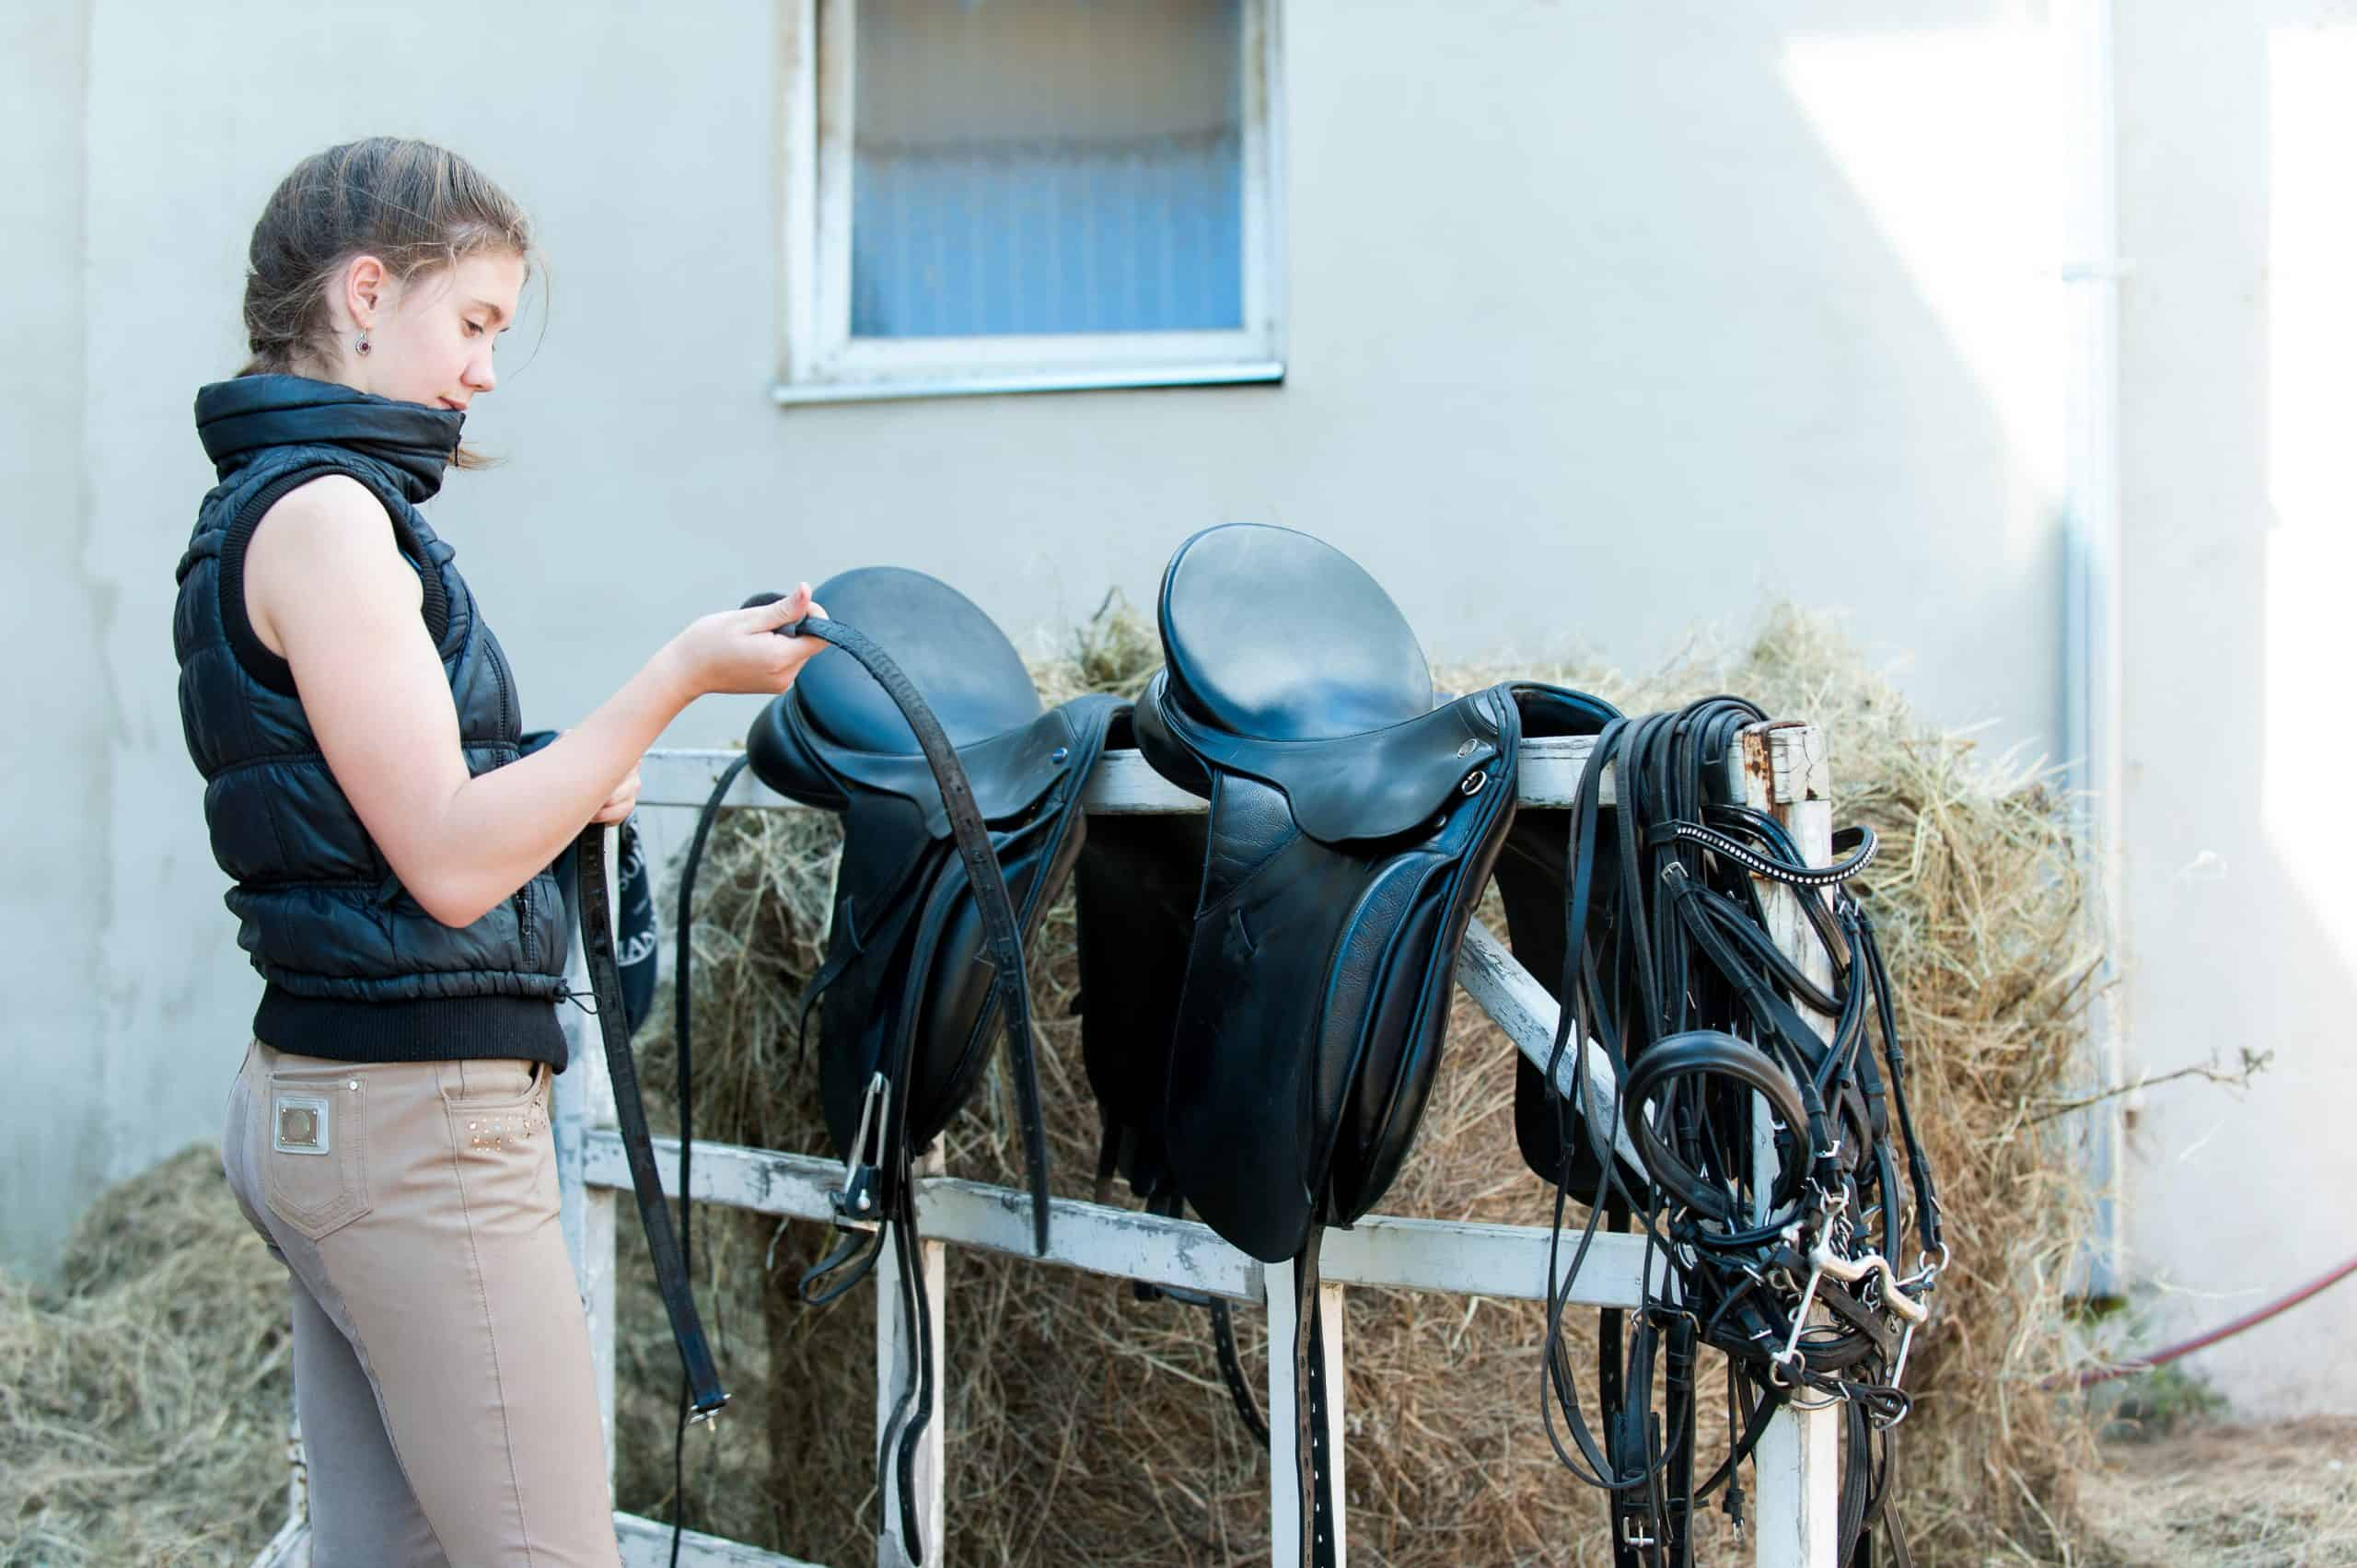 saddle care and maintenance cleaning